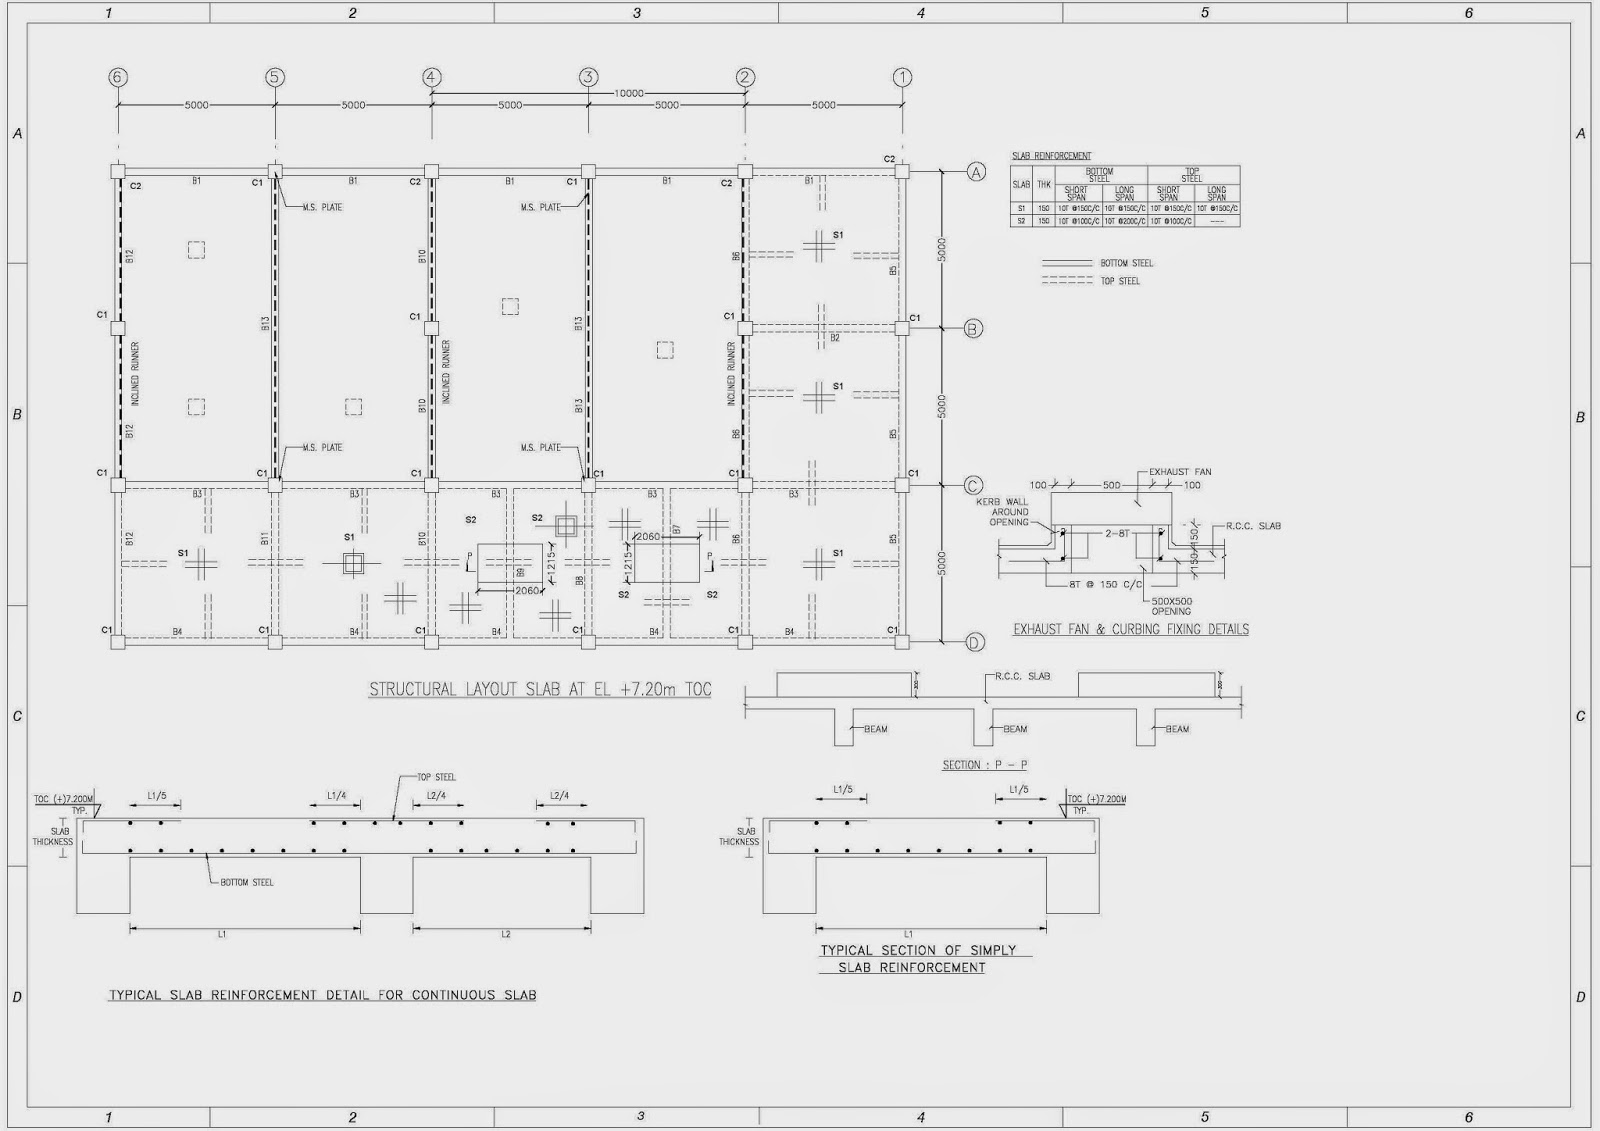 Structural plan for Foundation plan drawing